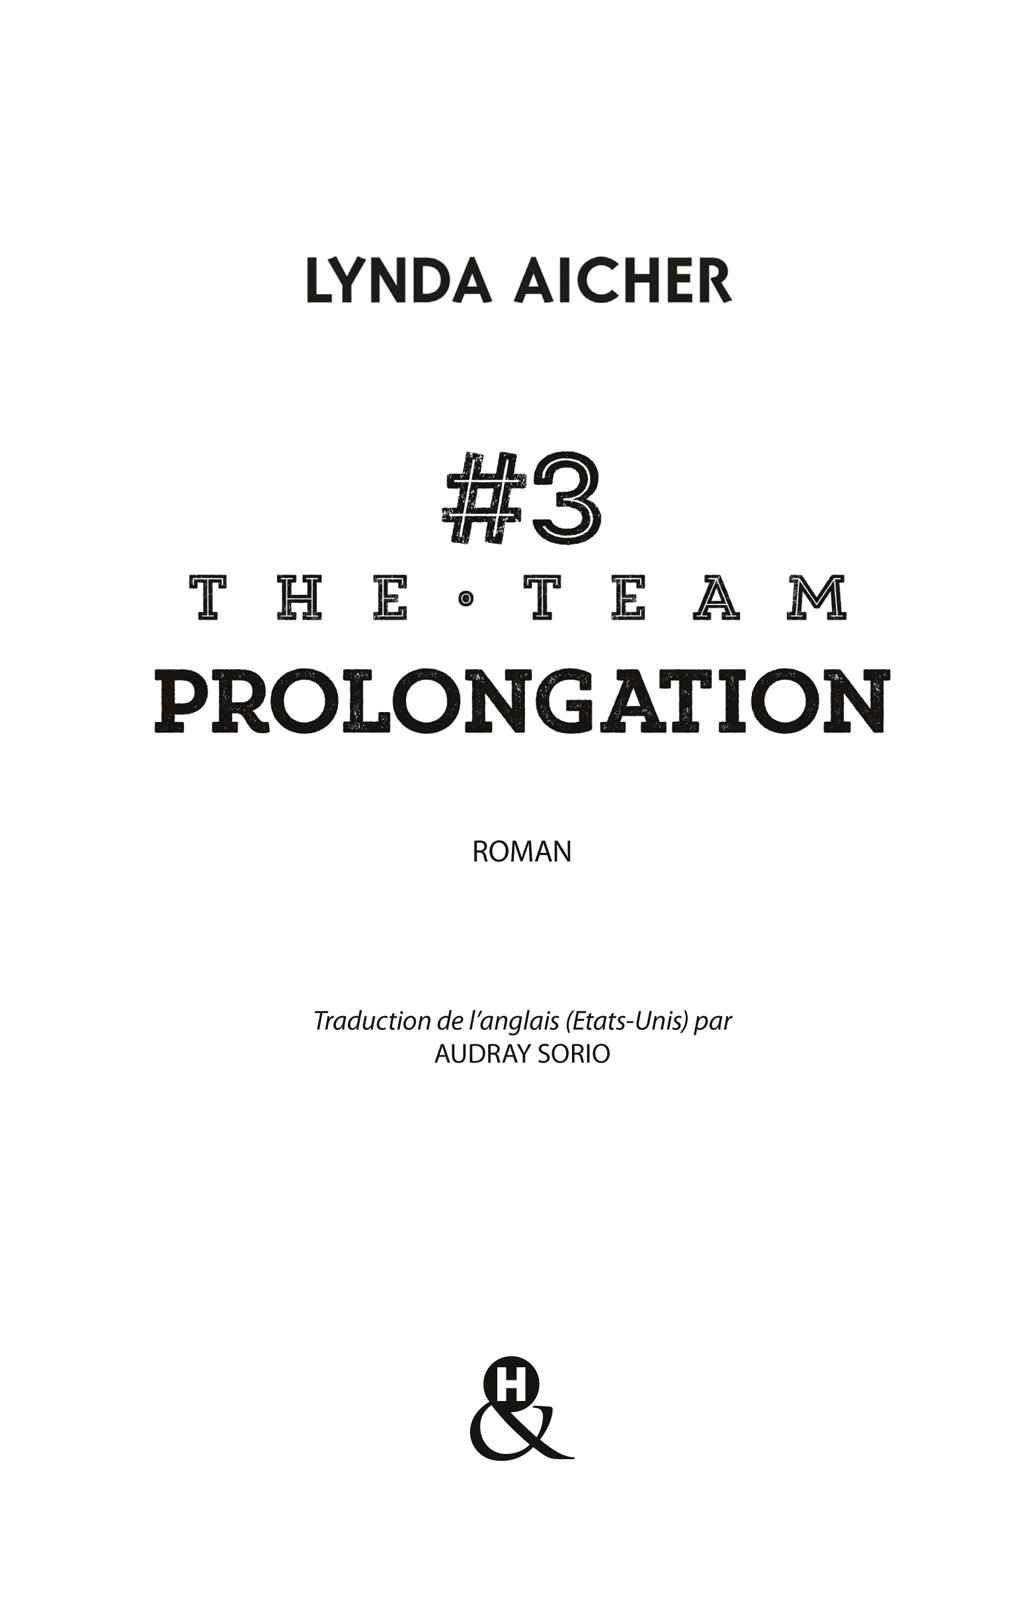 Page de titre : LYNDA AICHER, #3 THE TEAM PROLONGATION, Harlequin